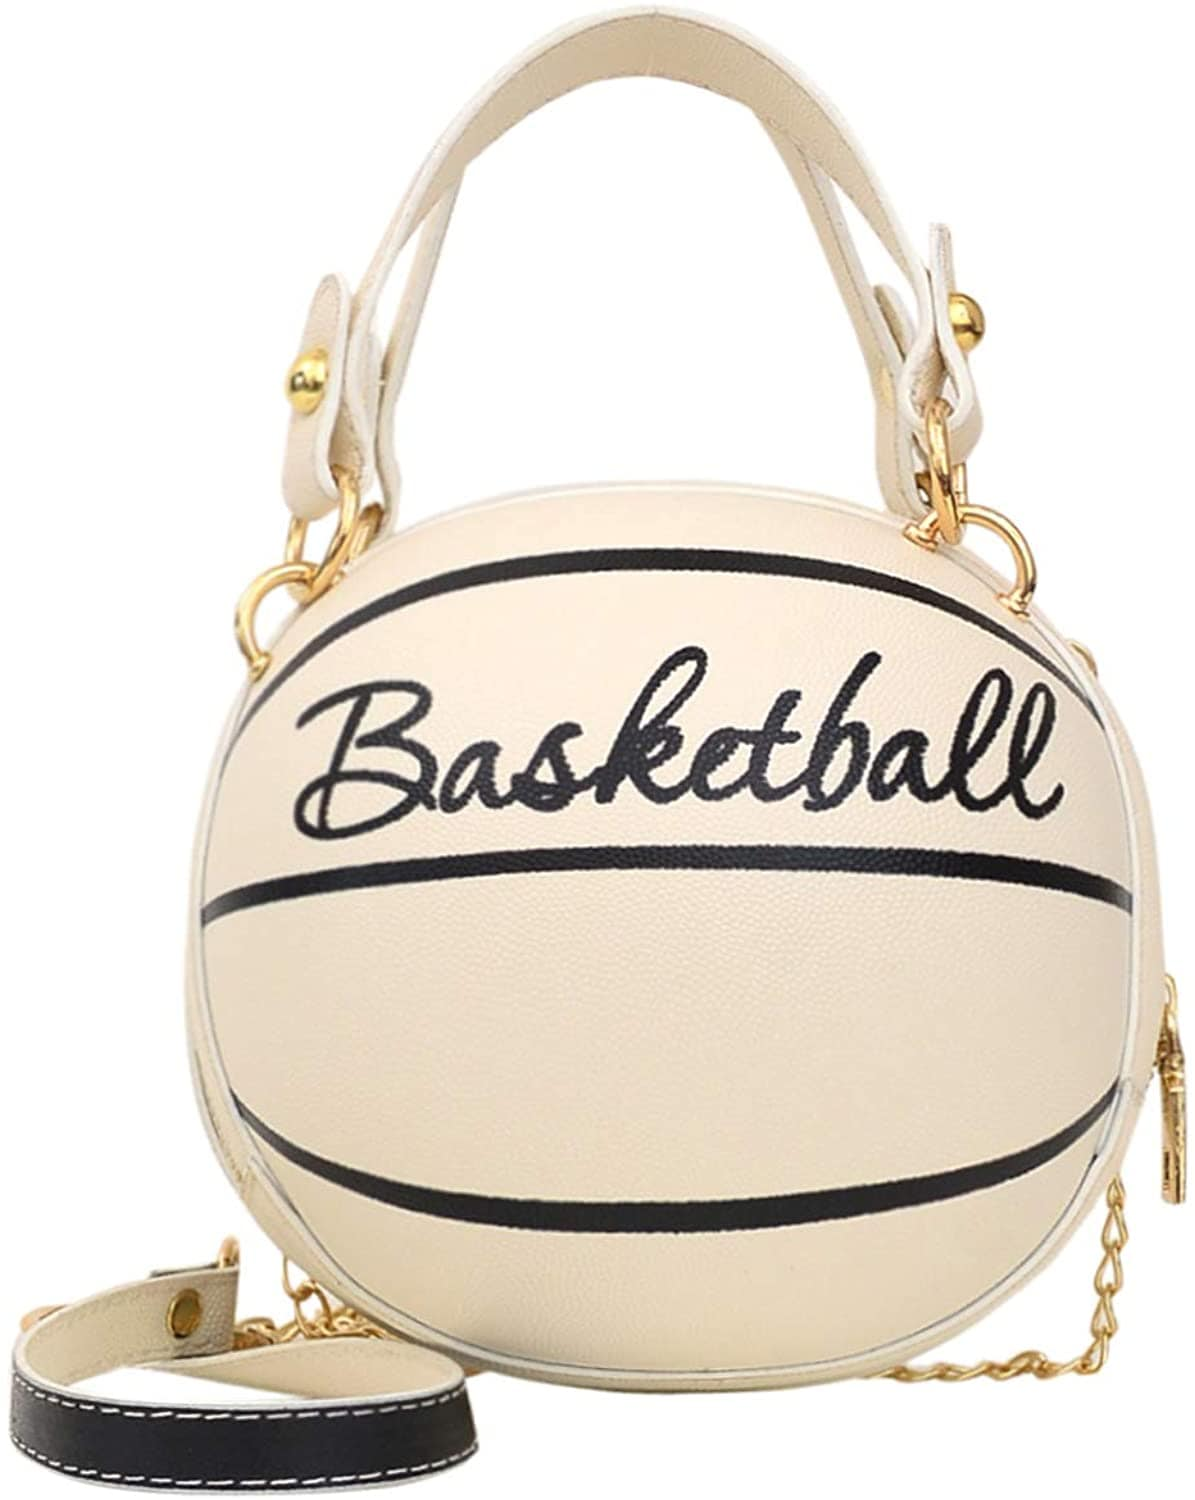 Basketball Clutch Crossbody White-Black Glitter Girl